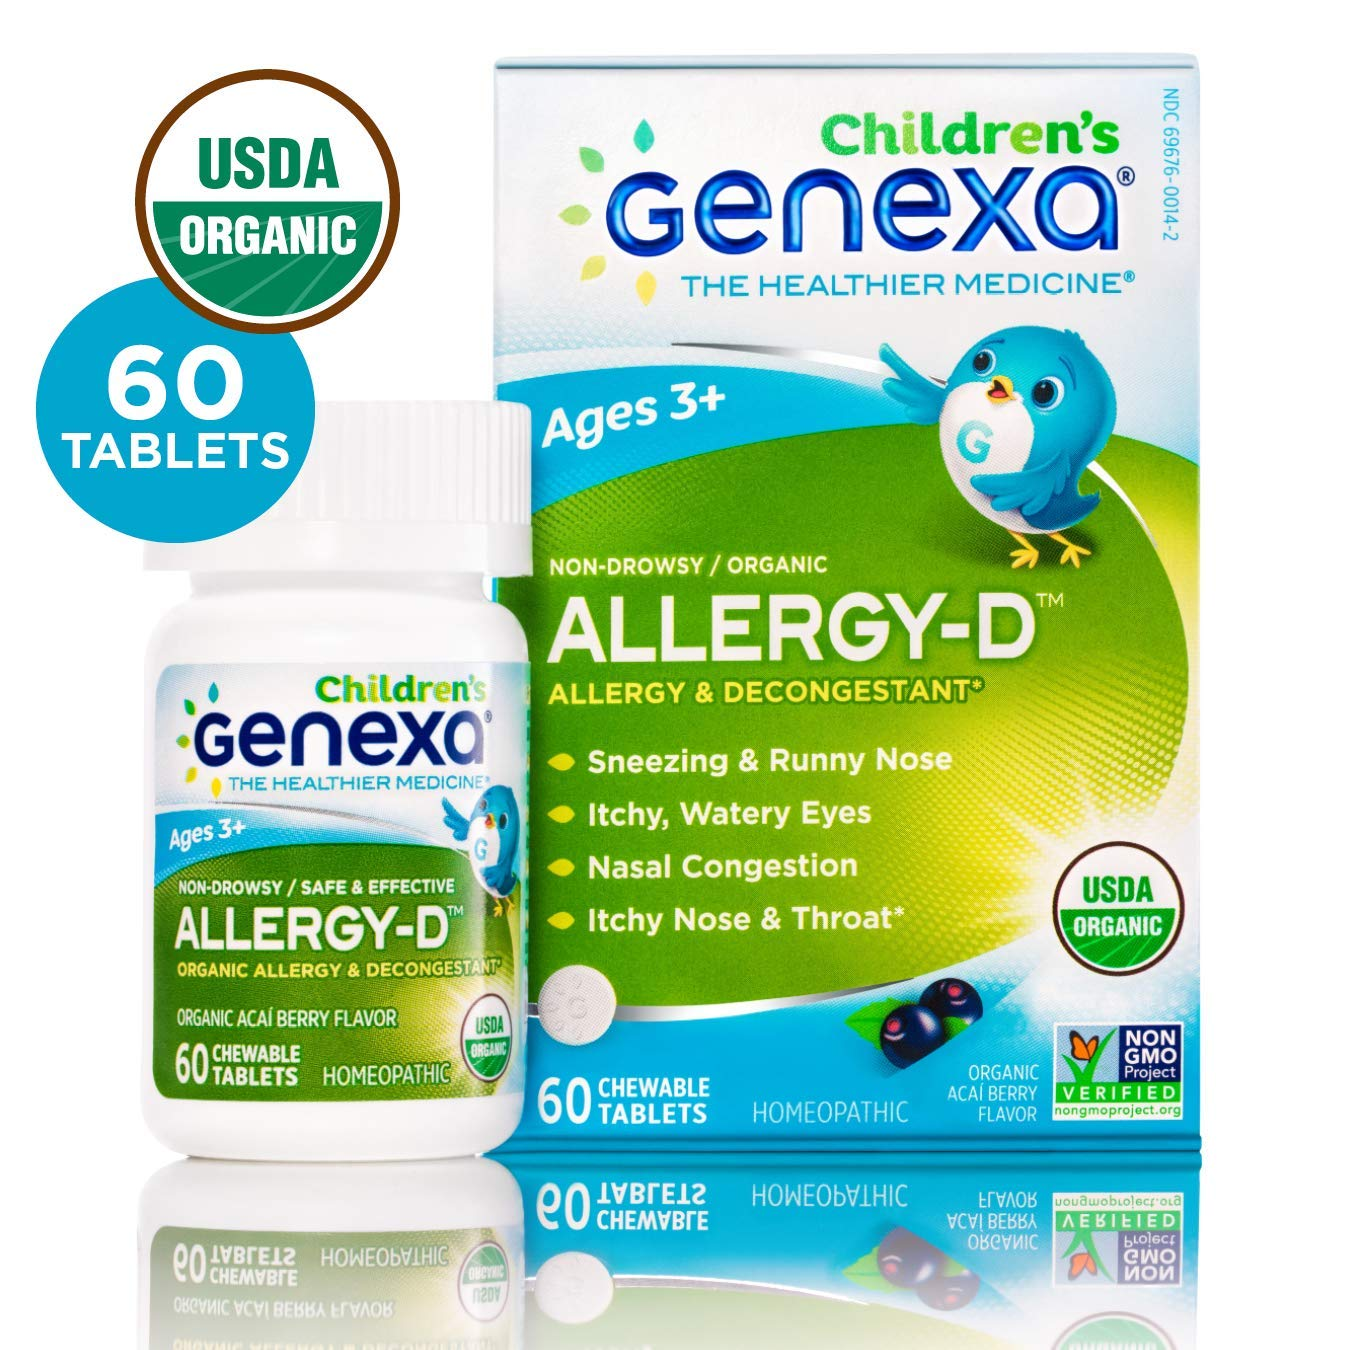 Genexa Allergy-D for Children – 60 Tablets | Certified Organic & Non-GMO, Physician Formulated, Homeopathic